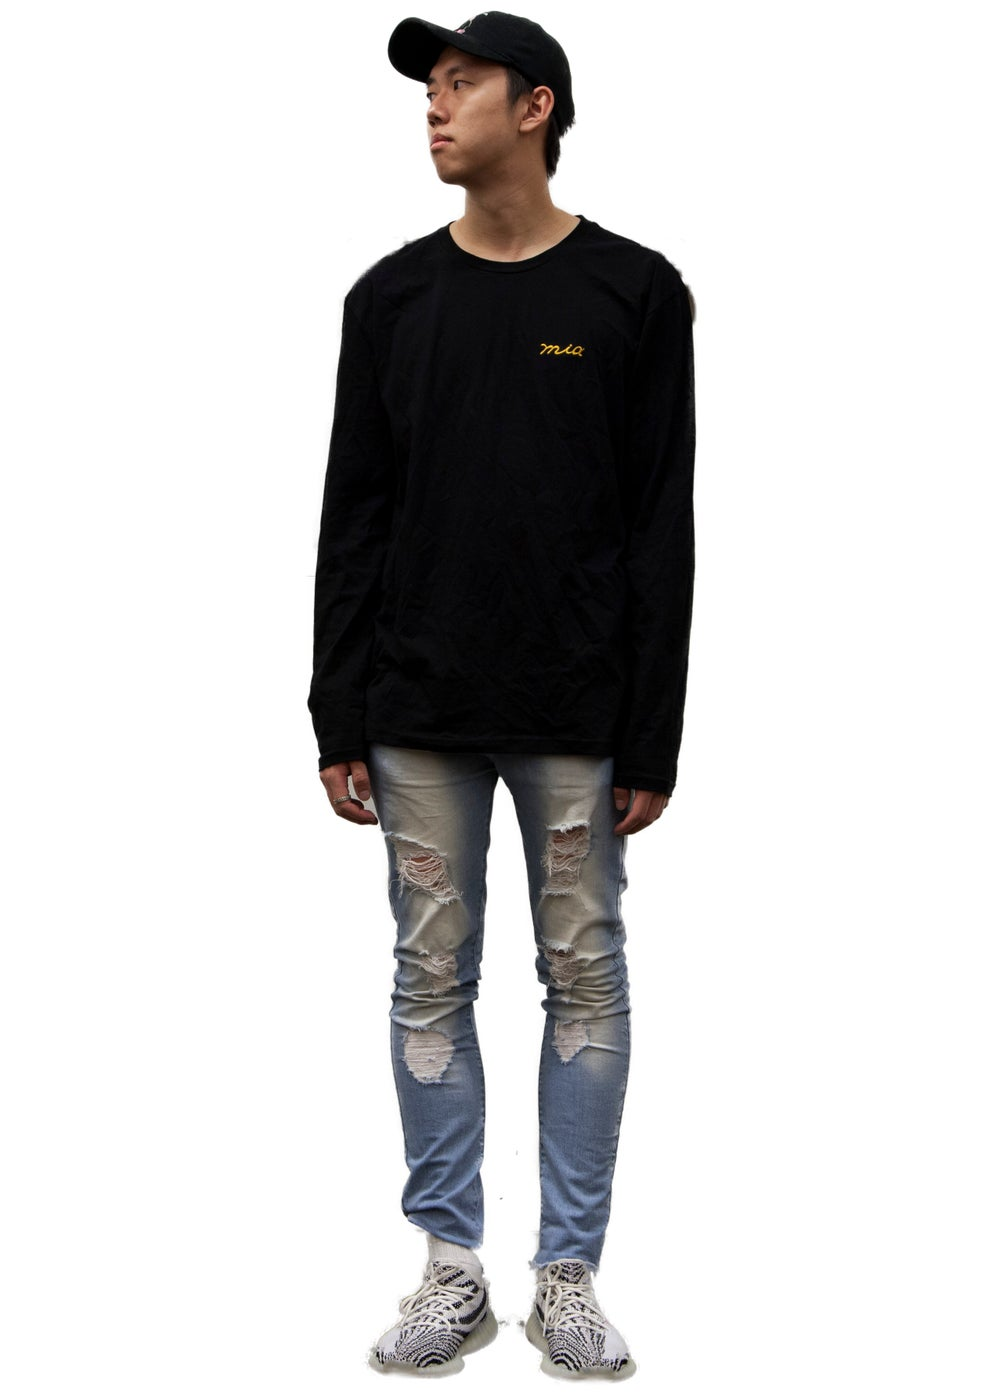 Image of obsidian black long sleeve